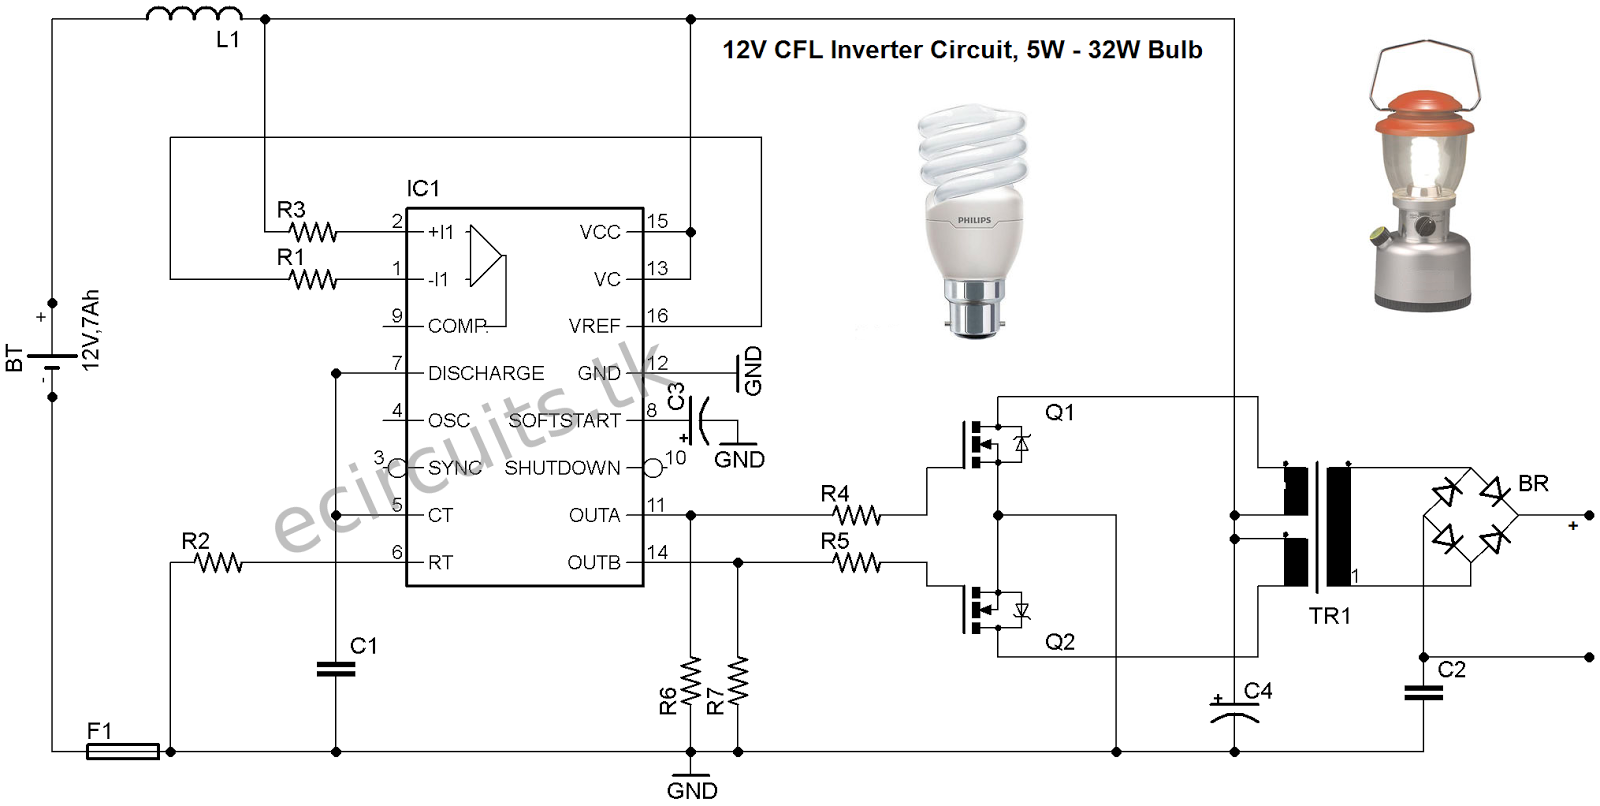 Cfl Ups Circuit Diagram Manual Guide Wiring Simple Electronics Hobby 12v Emergency Light Using 3525 Ic Mini Inverter Electronic Circuits Starter 110v